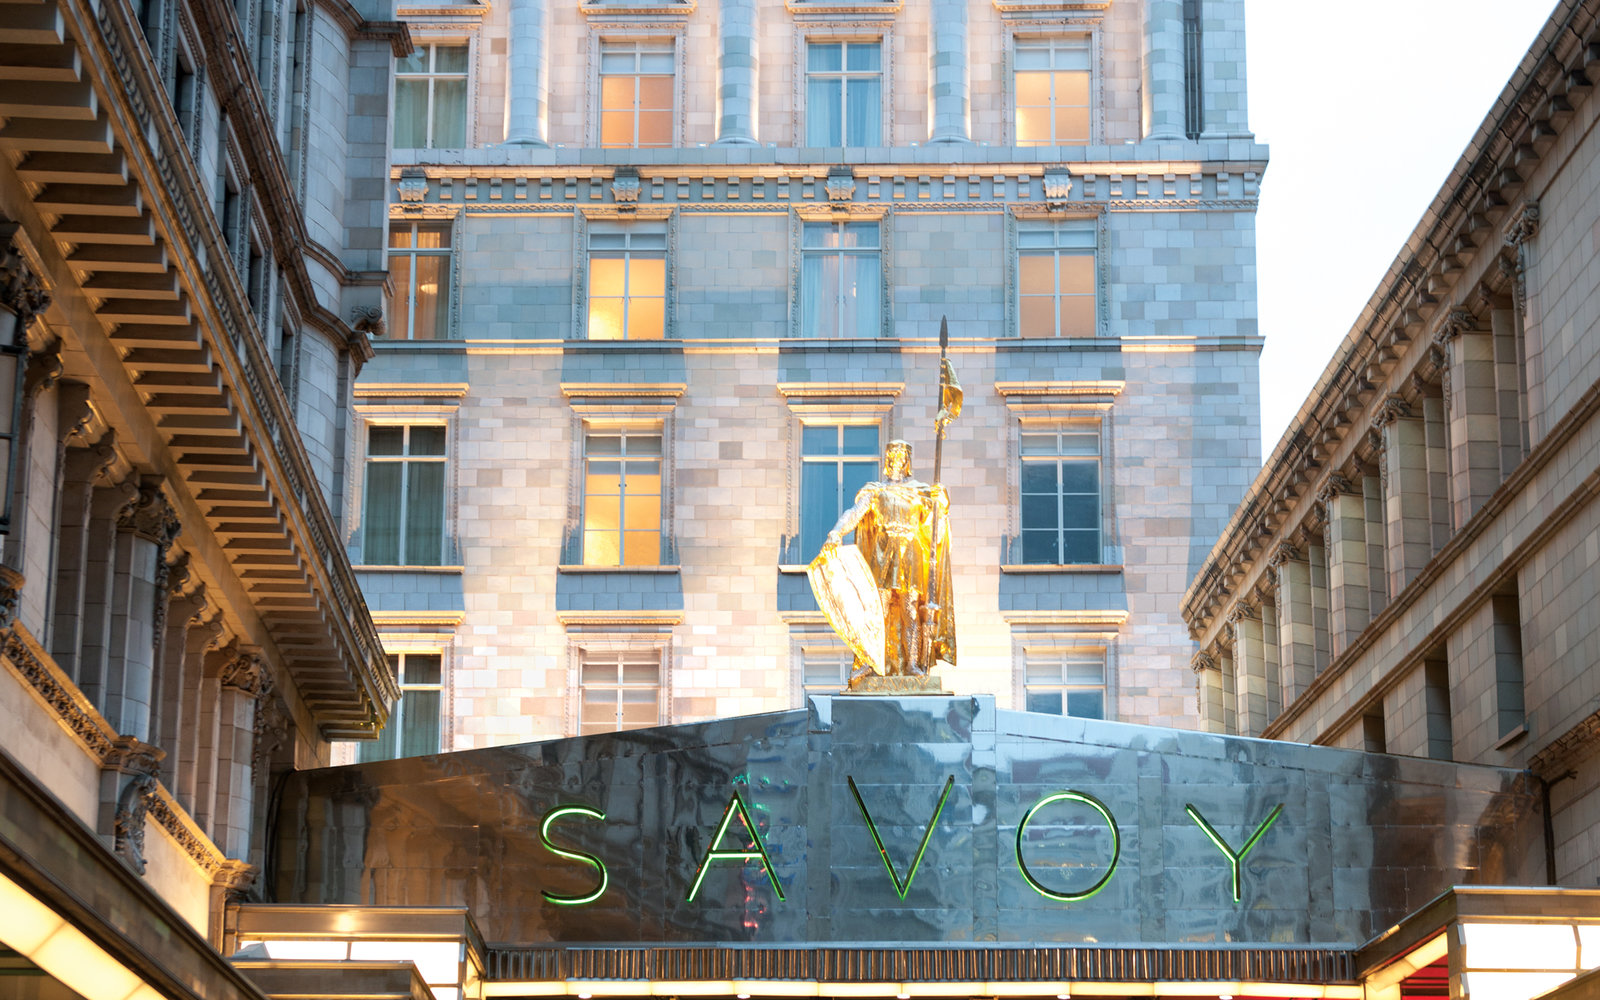 Savoy Hotel, London, England